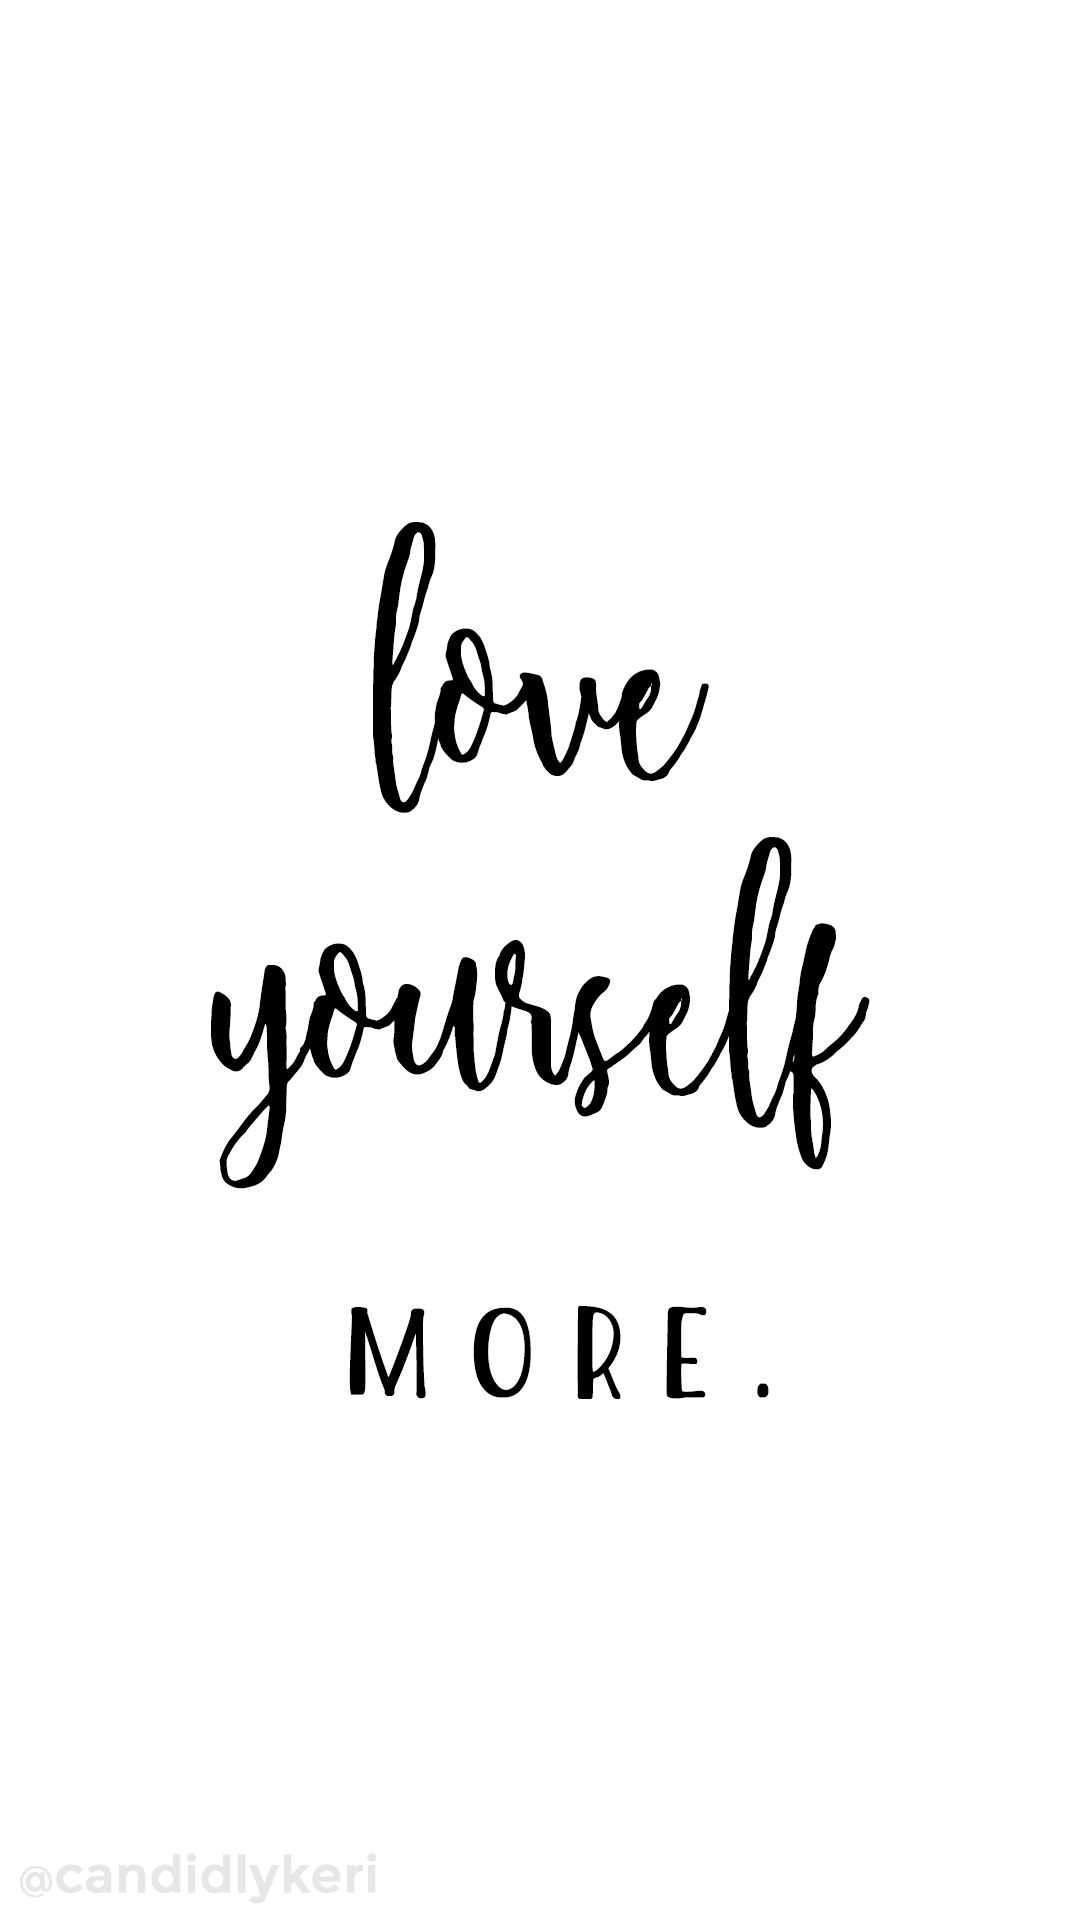 Love Yourself More Quote Inspirational Self Love Wallpaper You Can Download For Free On The Blog For Any Device Mobile Desktop Iphone Android